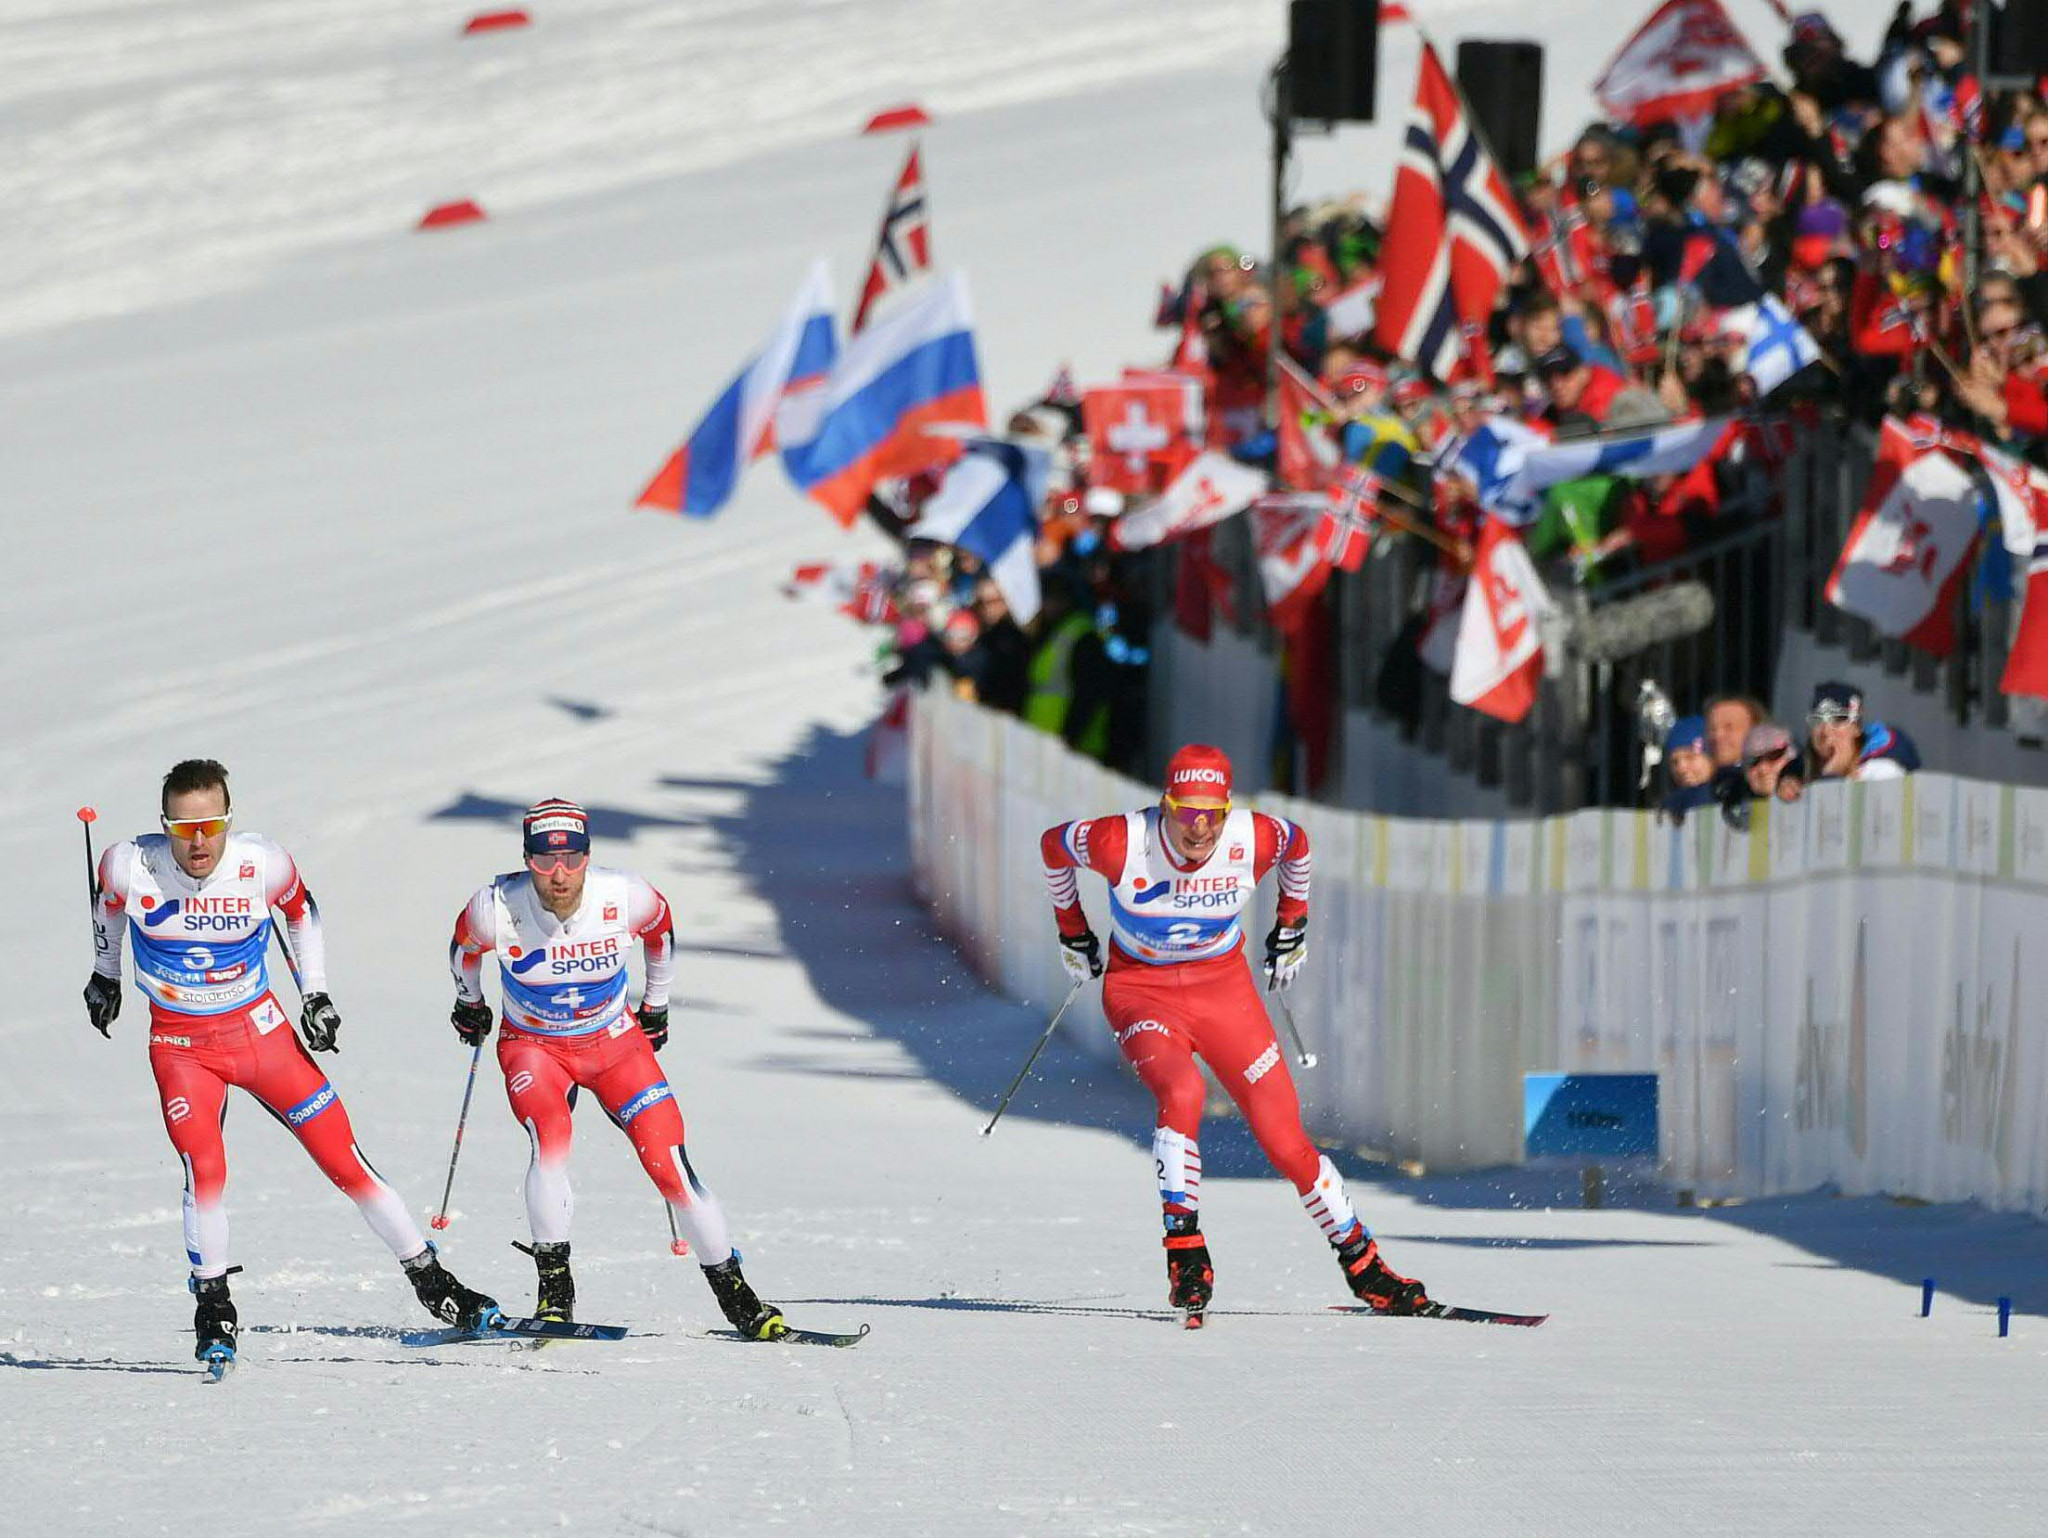 A closely contested men's 30km skiathlon competition took place ©Getty Images